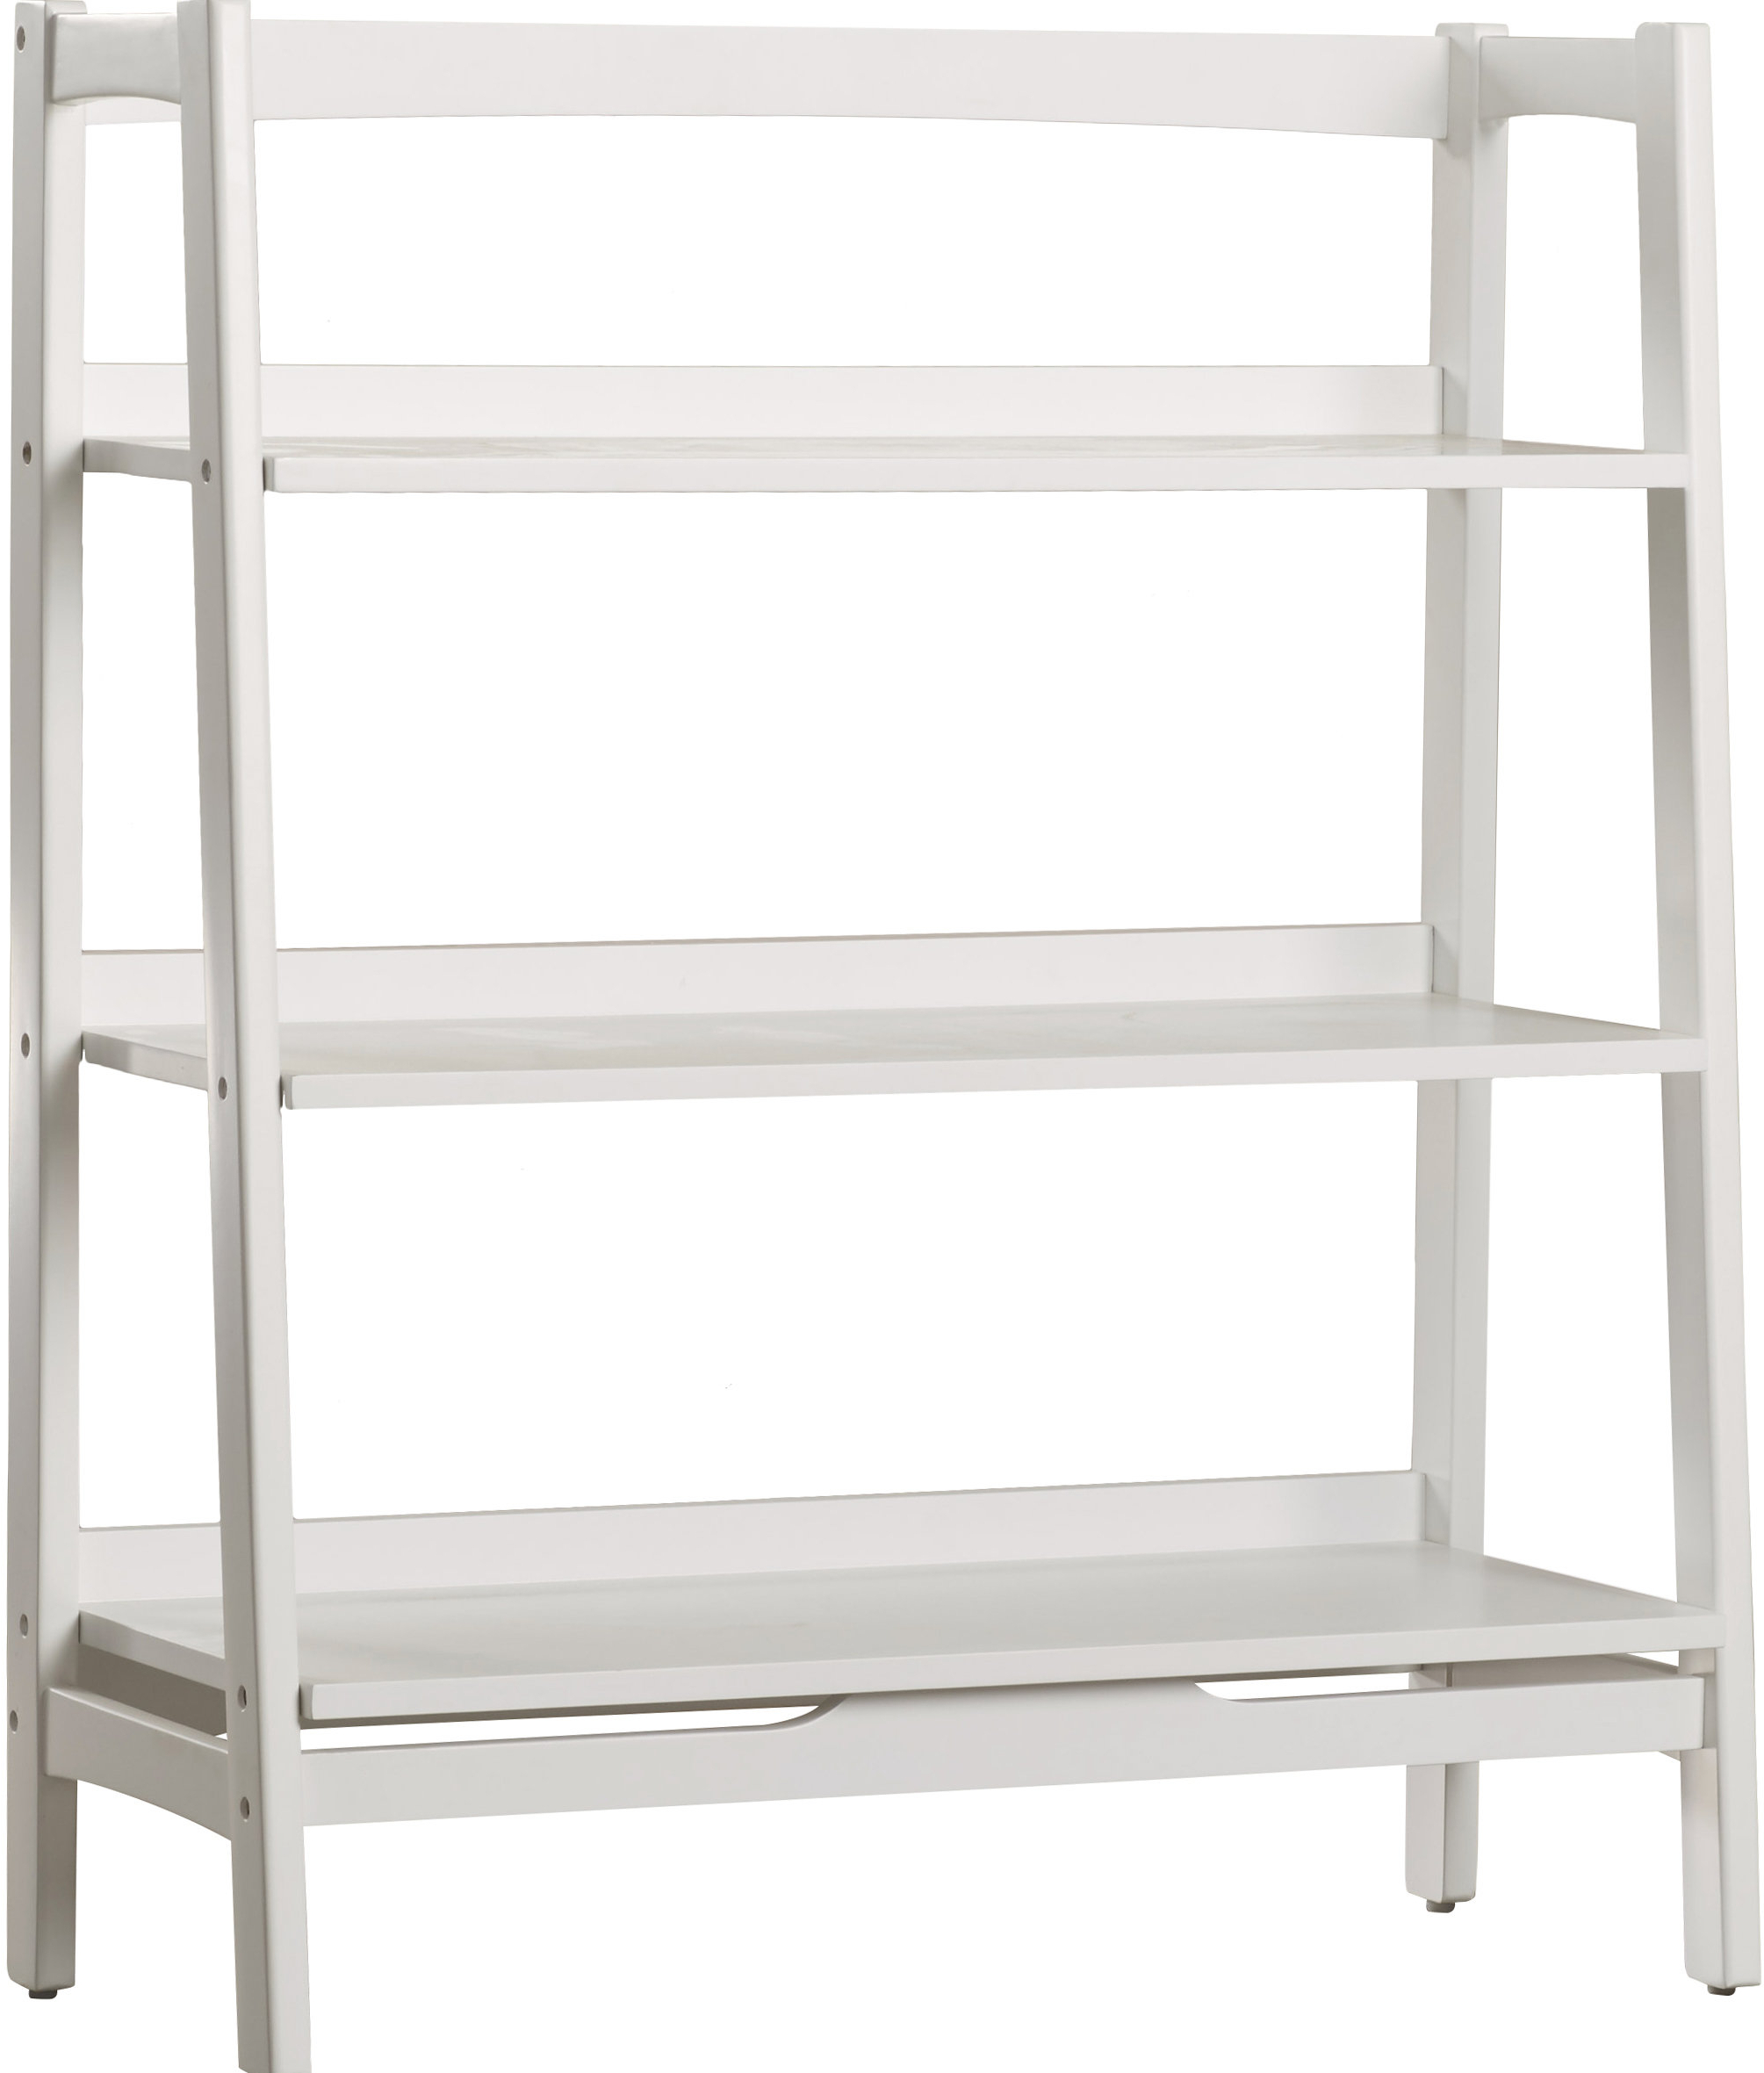 Destiny Etagere Bookcases Regarding Most Up To Date Destiny Etagere Bookcase (Gallery 7 of 20)